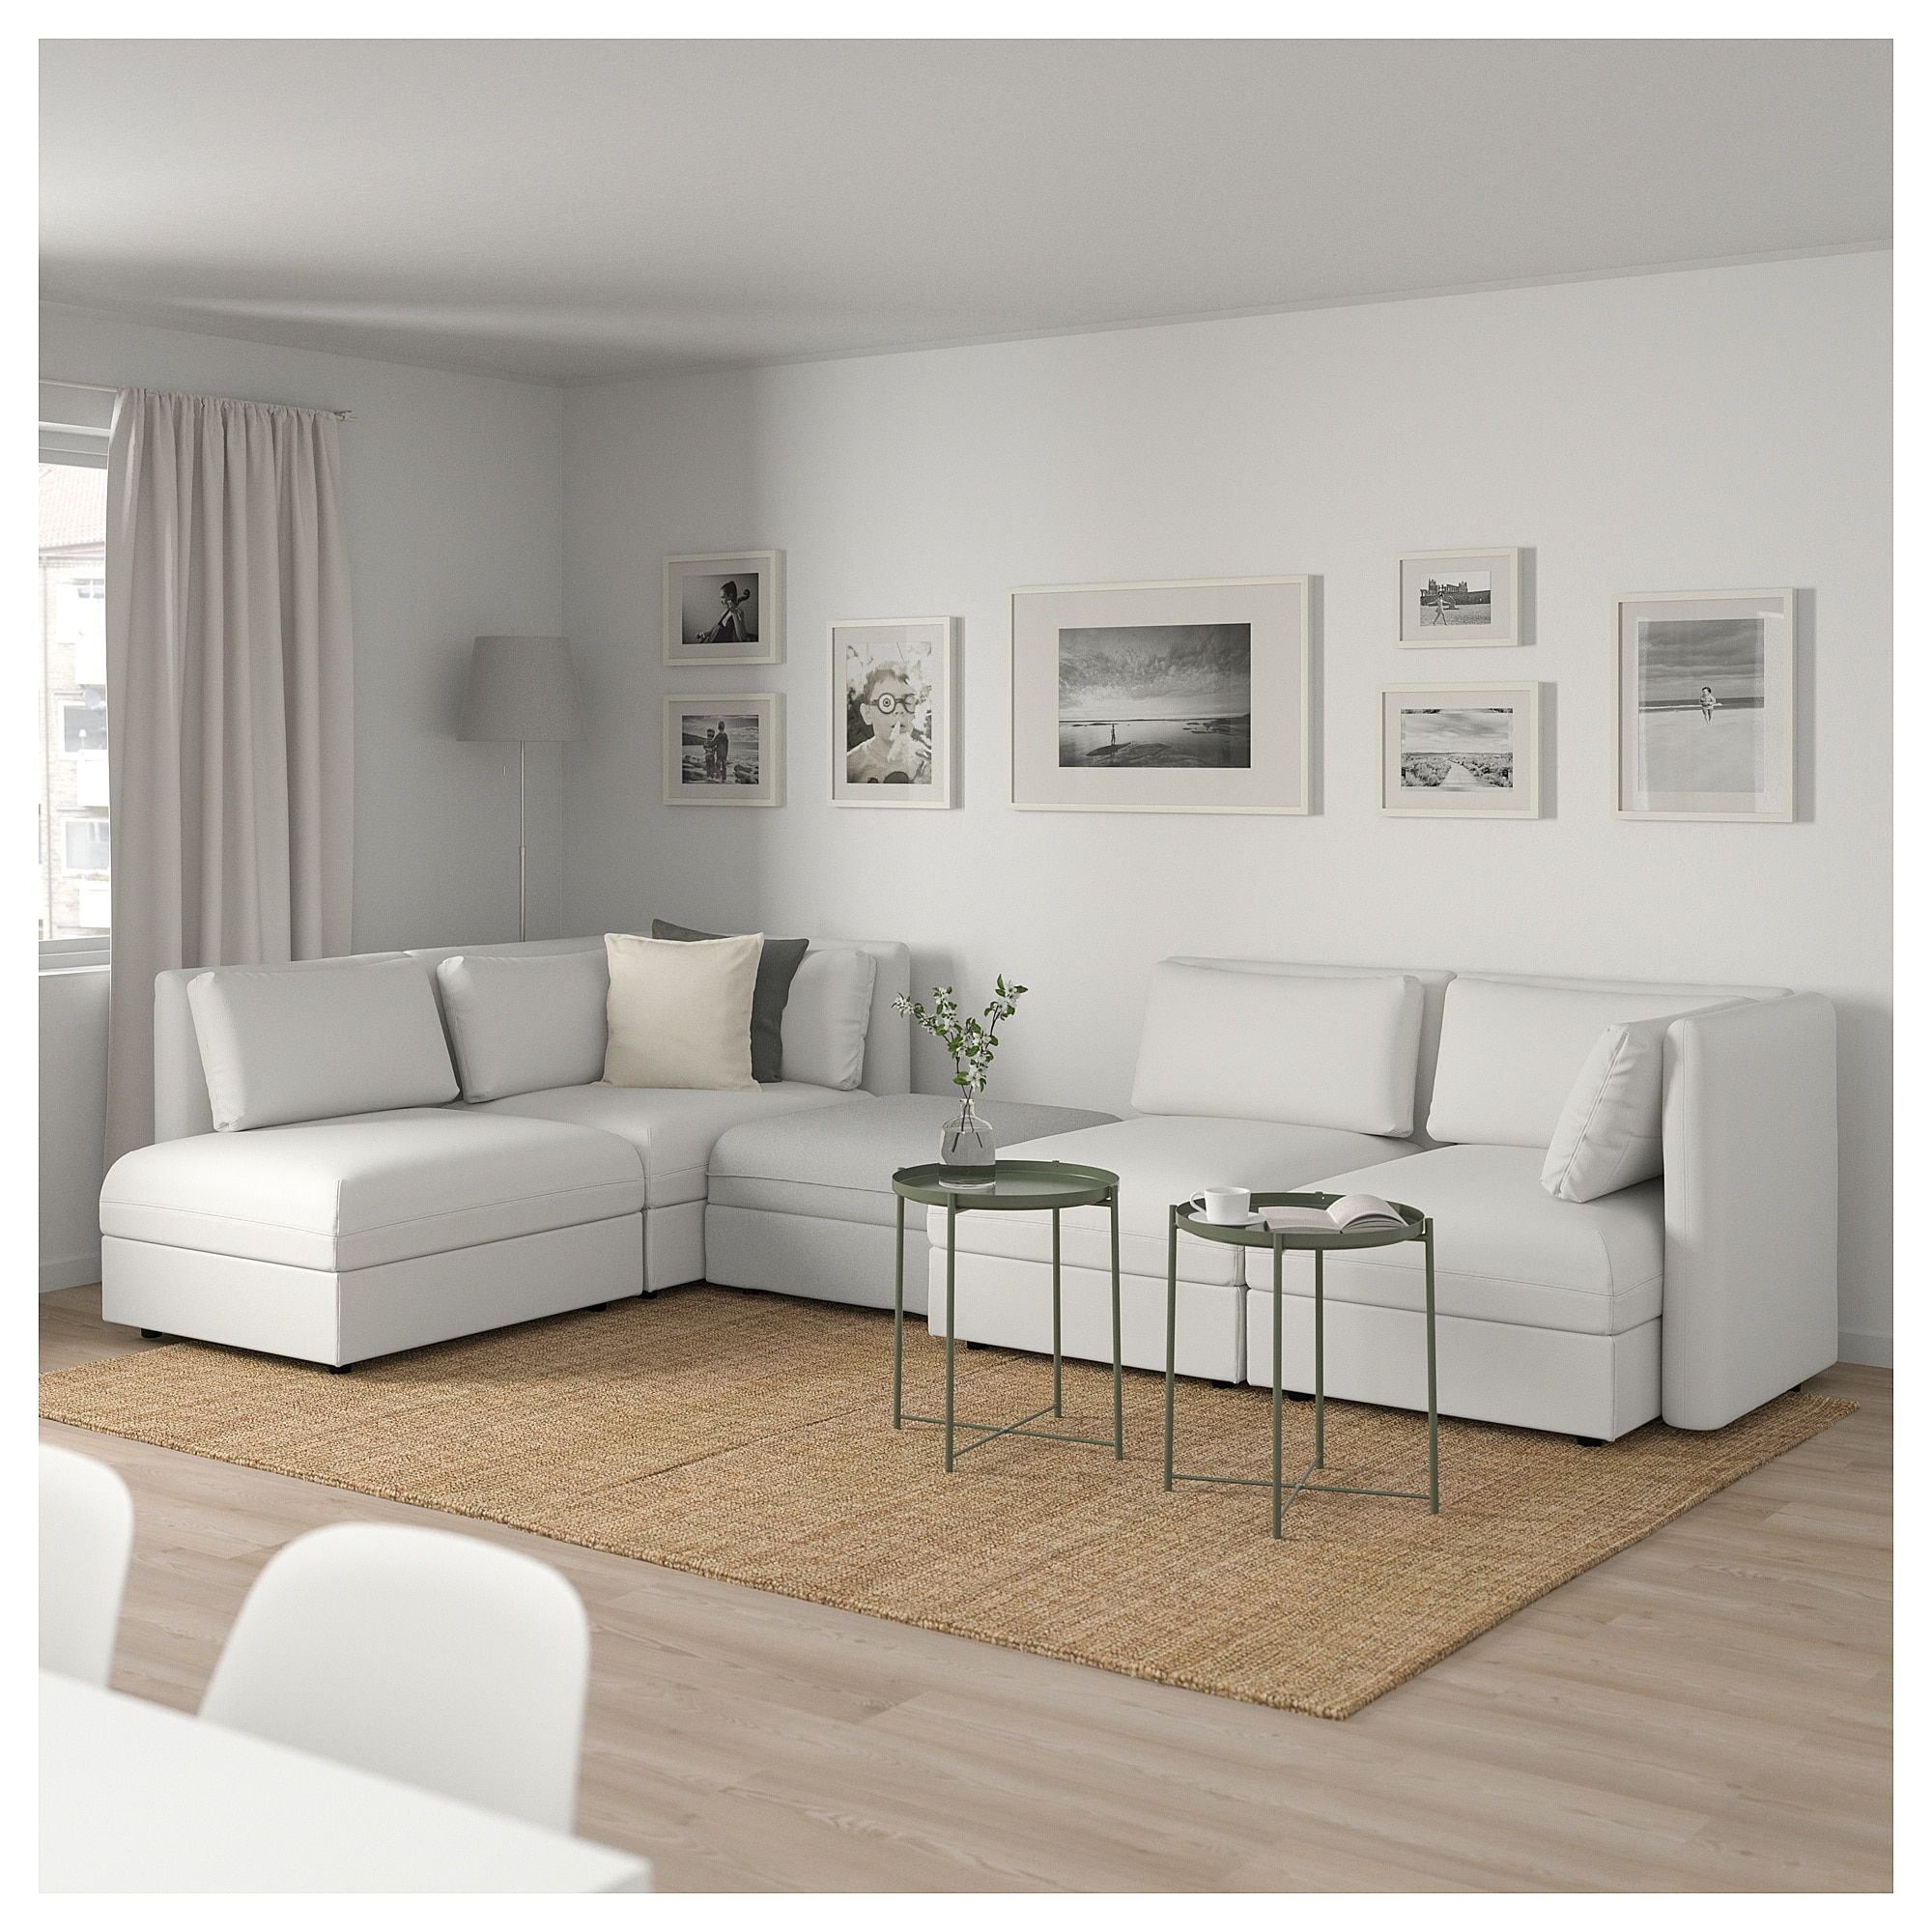 Vallentuna 4 Seat Modular Sofa With 3 Beds Modular Corner Sofa 4 Seat Vallentuna With Storage Murum Orrsta